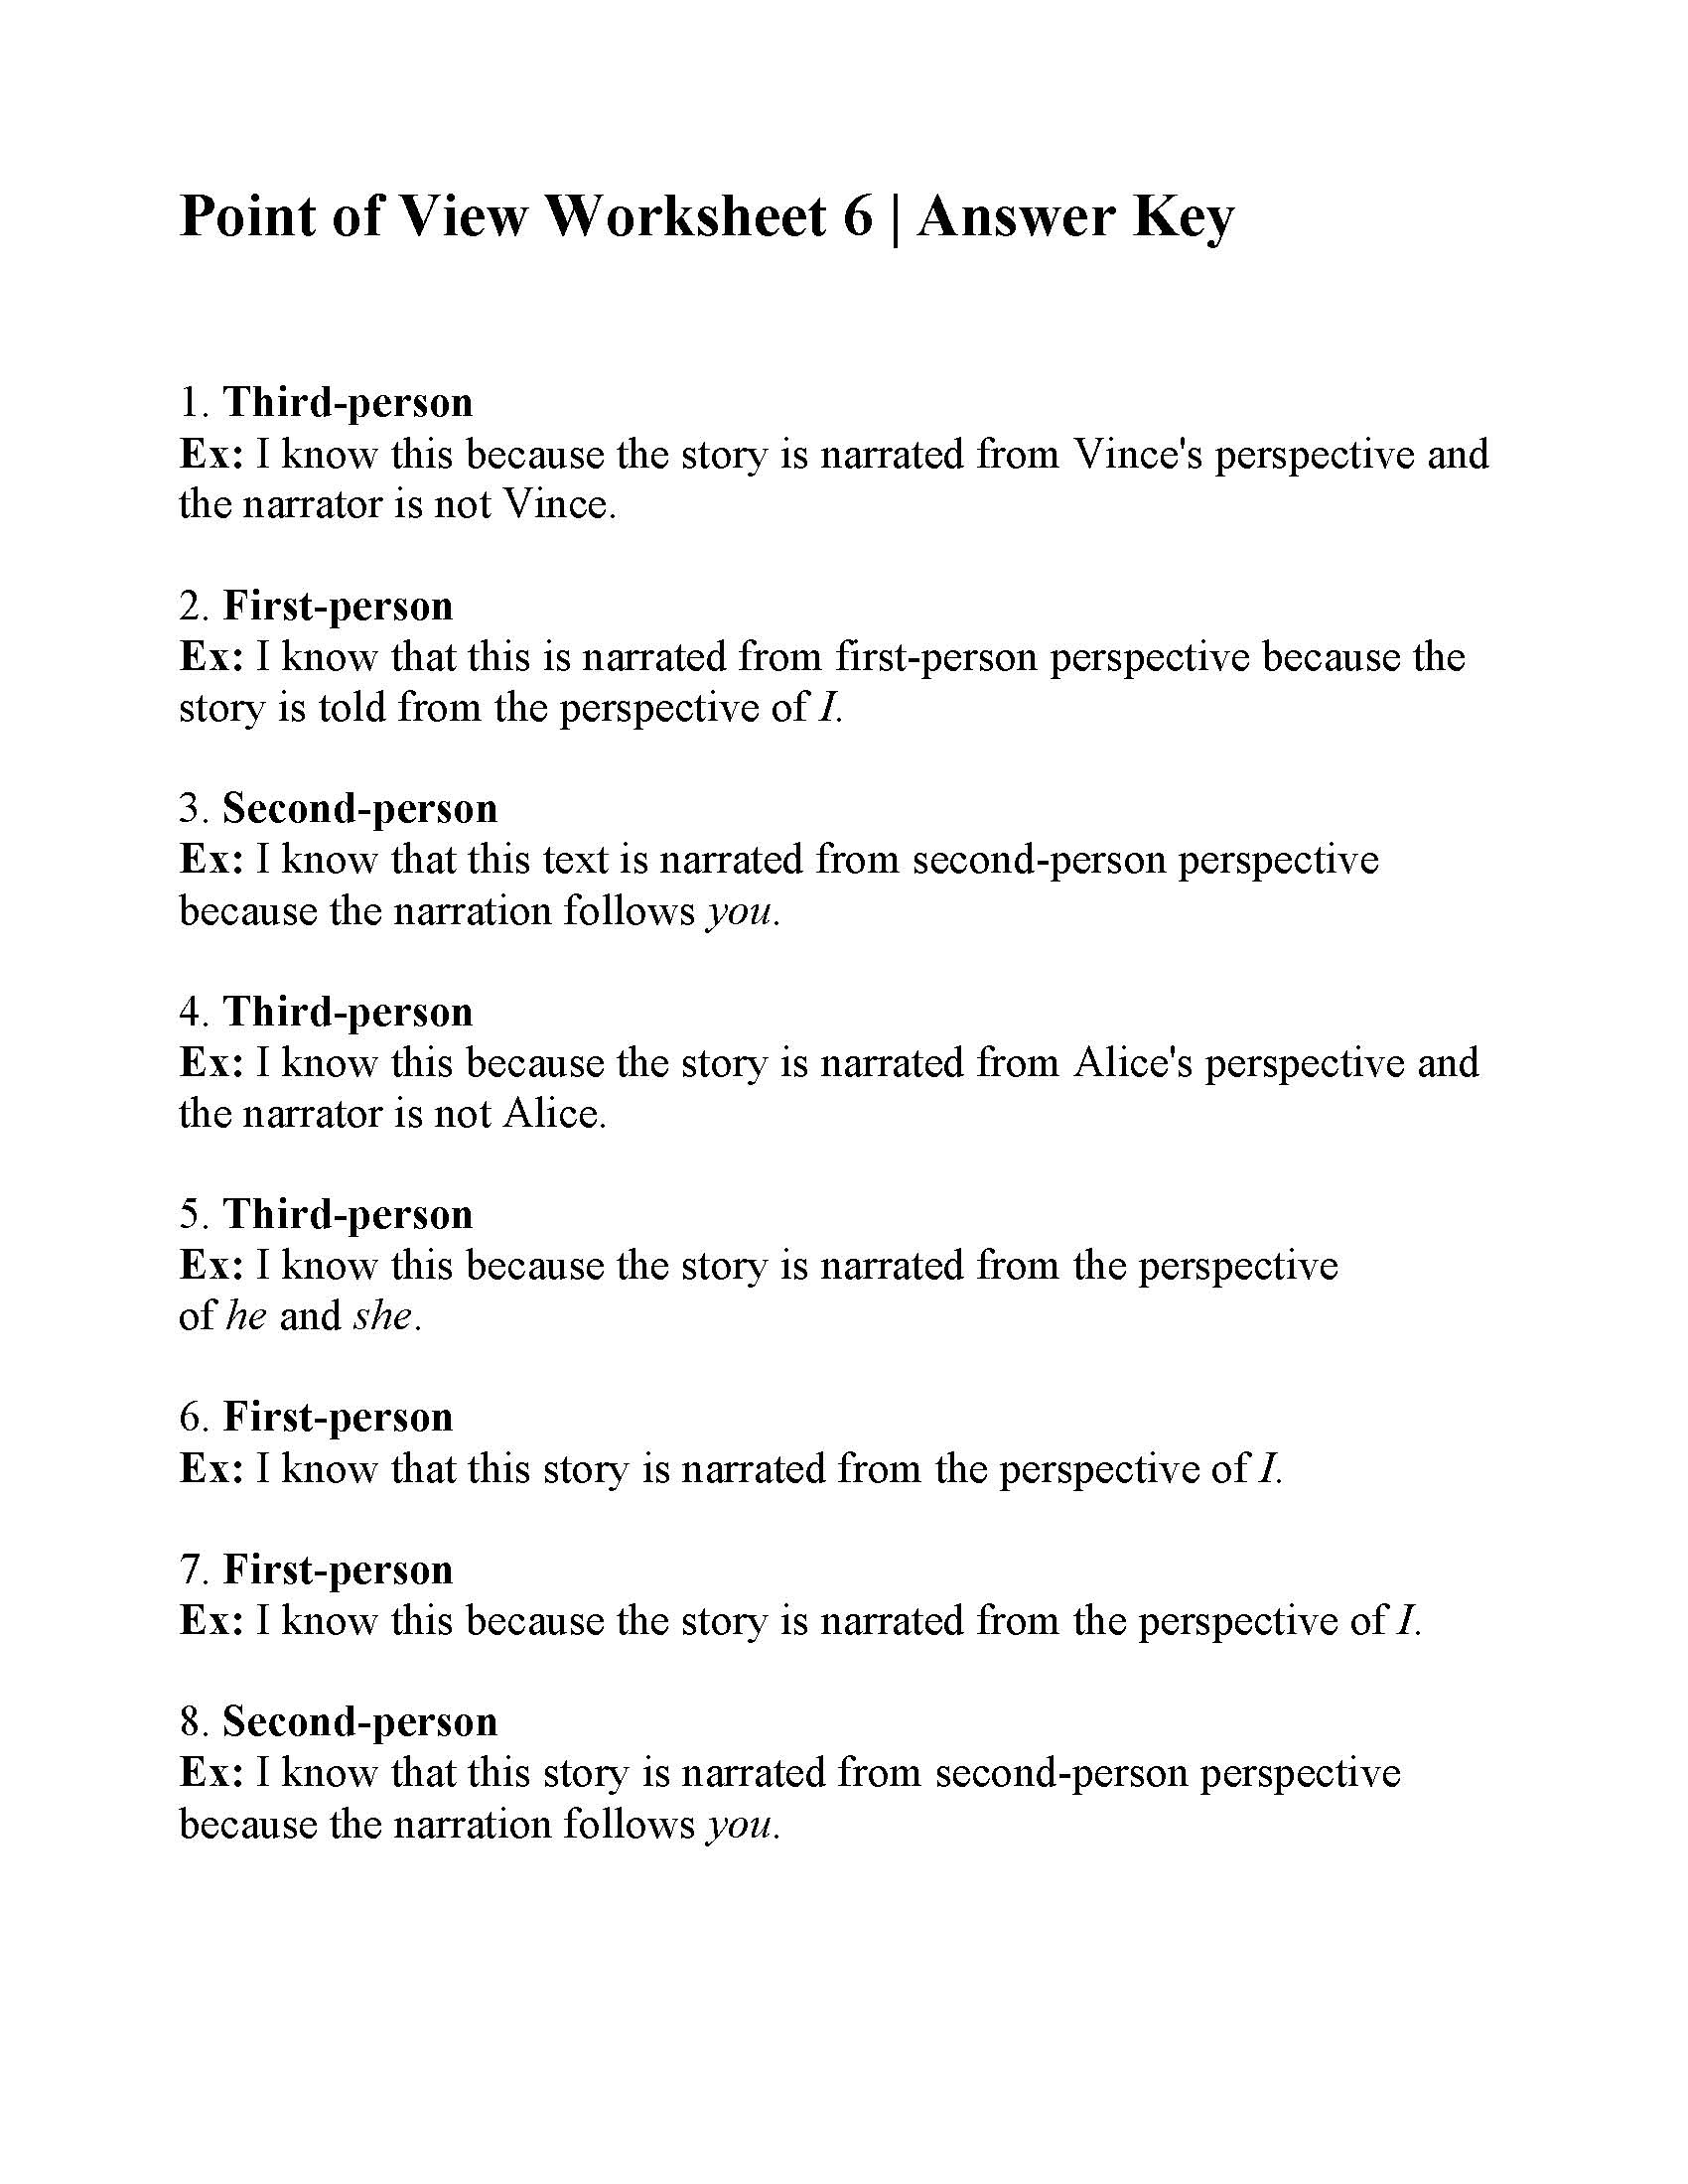 Point Of View Worksheet 6 Answers